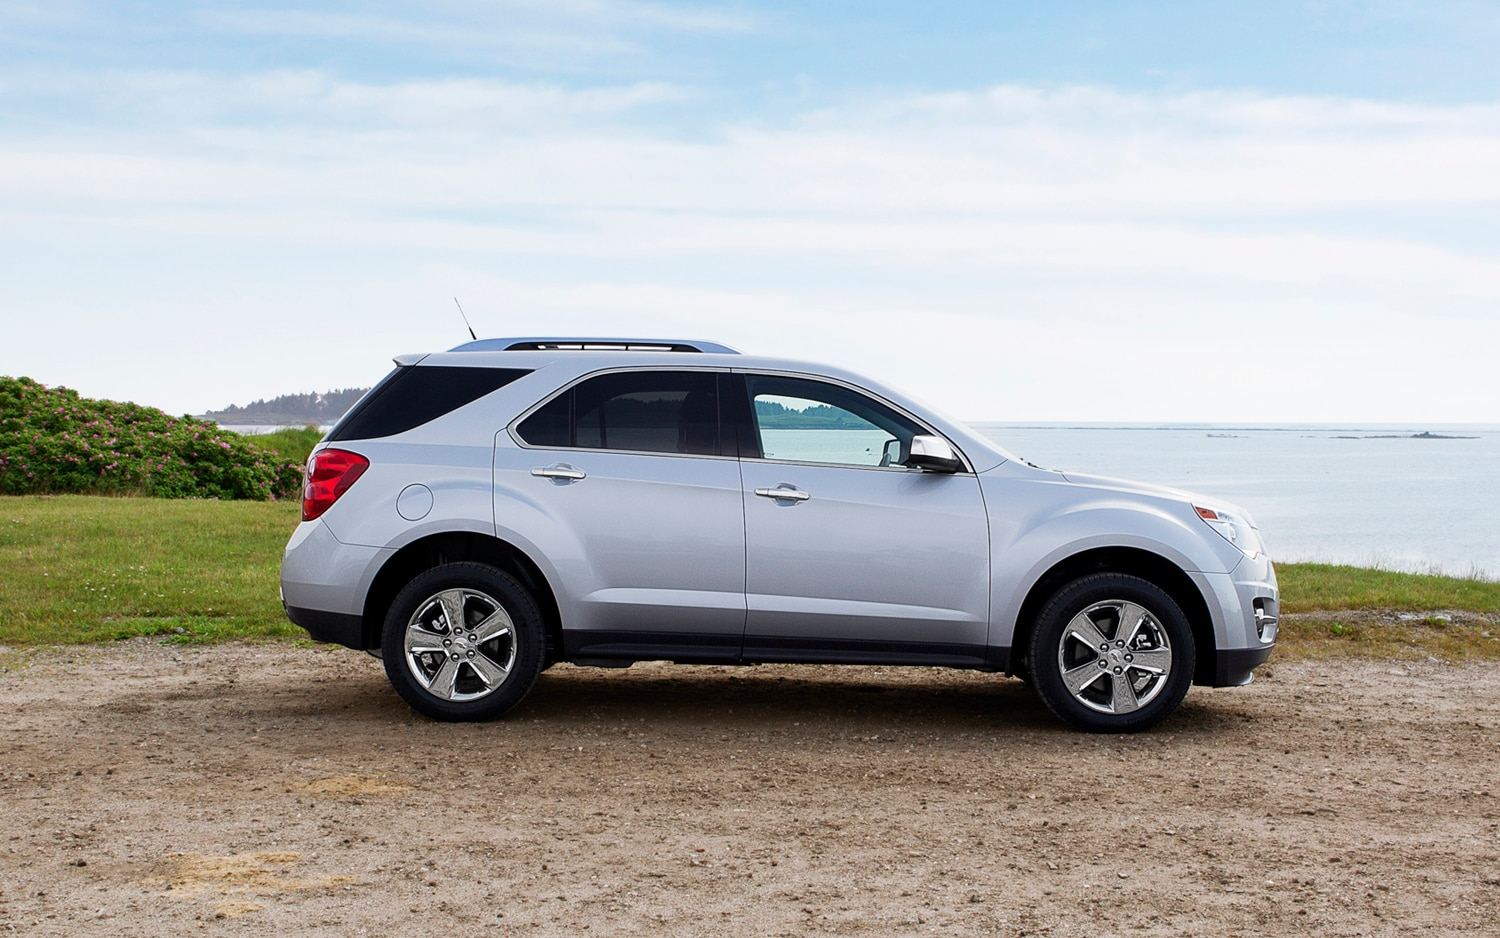 2013 Chevrolet Equinox Side View